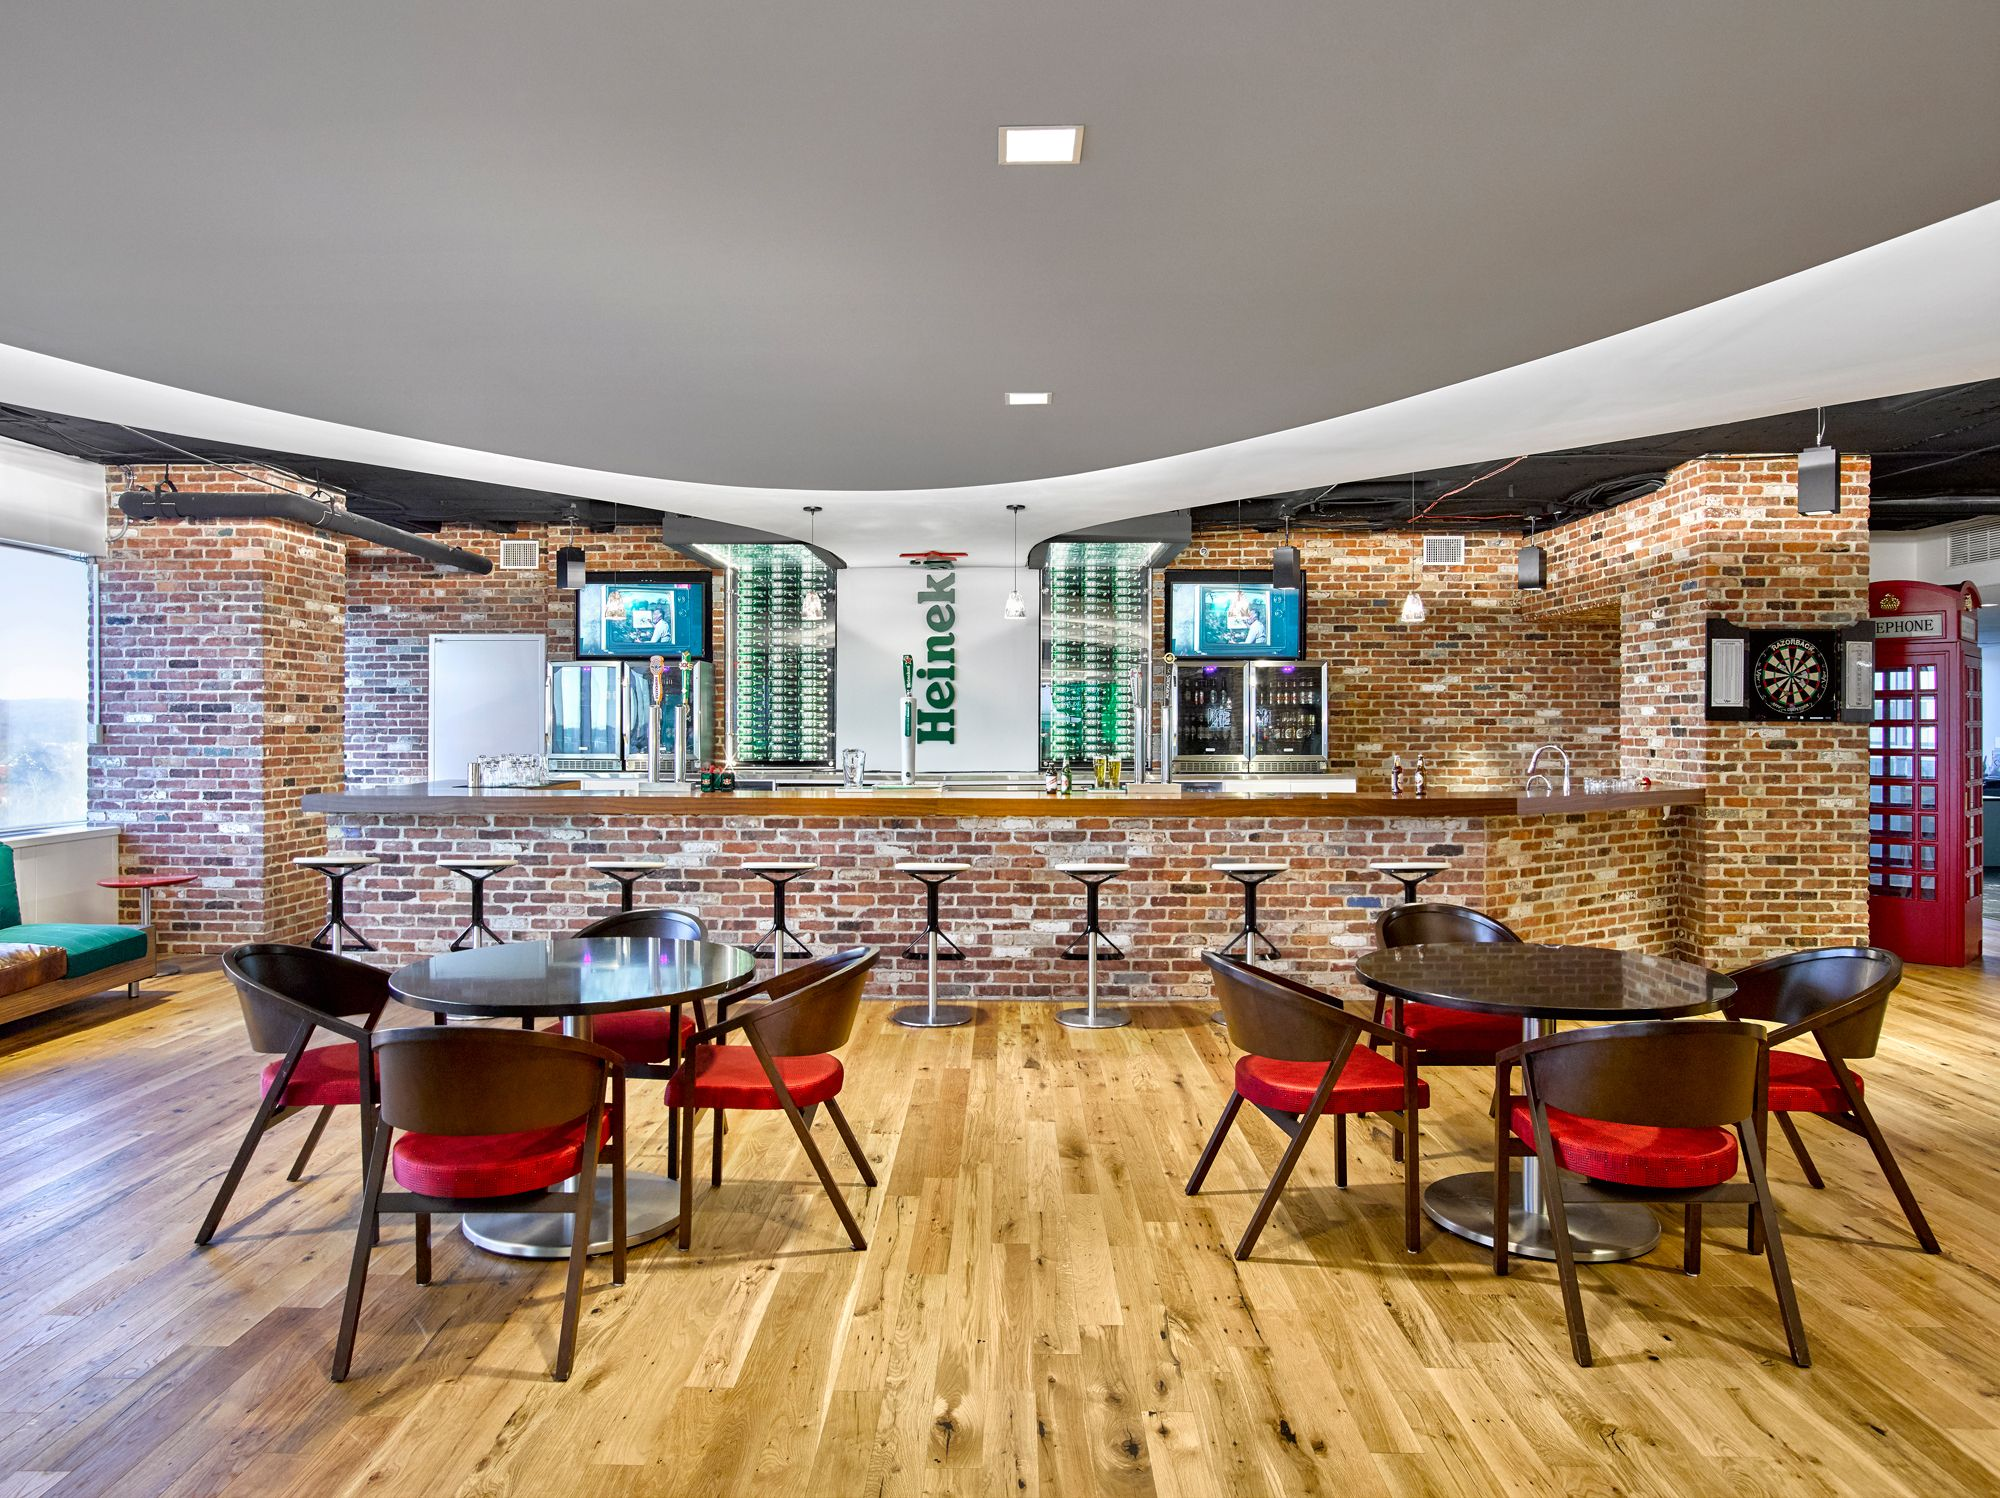 Interior Design Magazine Featured Heinekens Lavish New Digs By Focusing